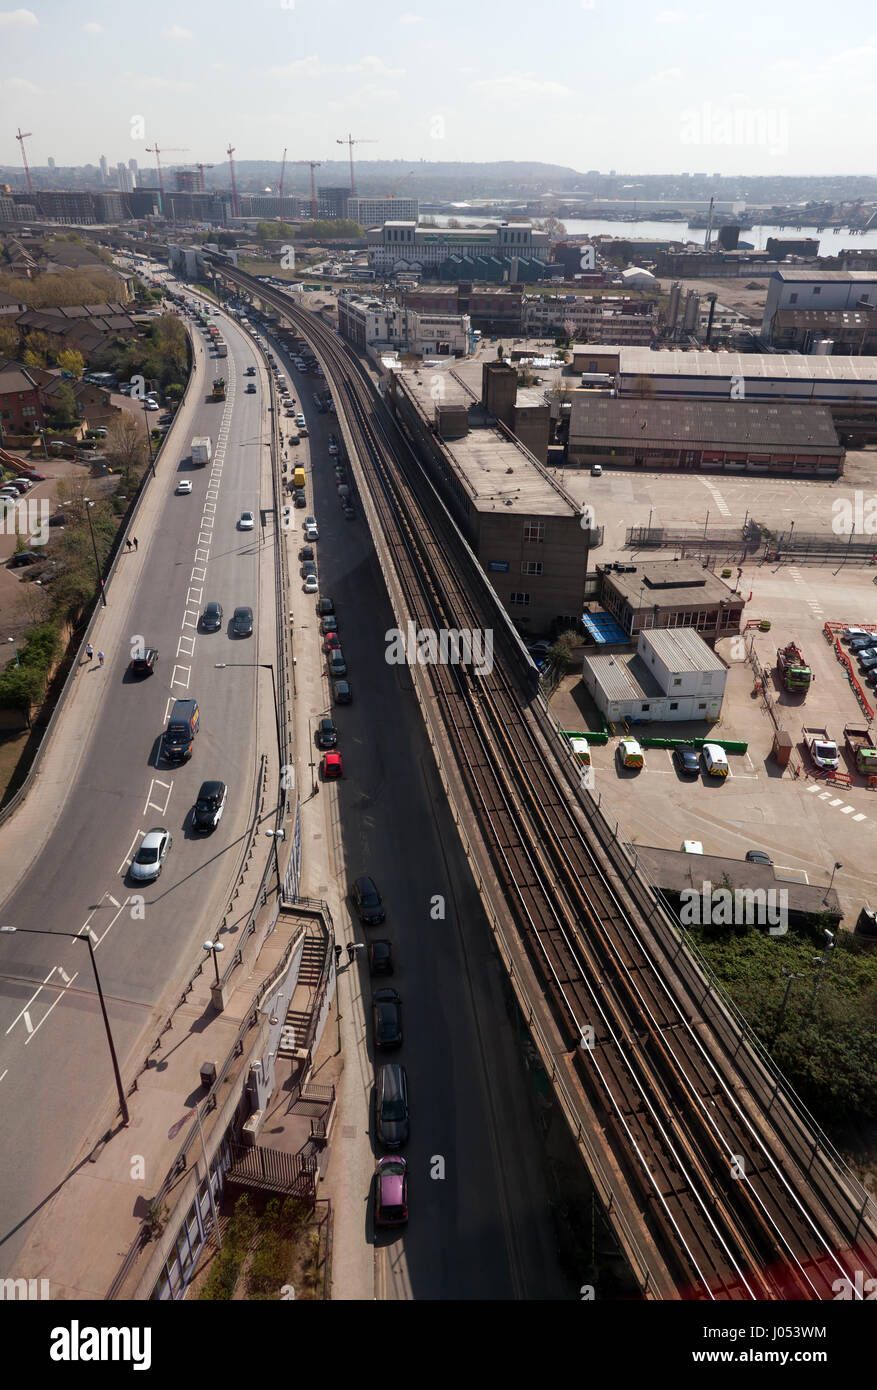 Aerial view of the Docklands Light Railway track, looking towards West Silvertown Station - Stock Image